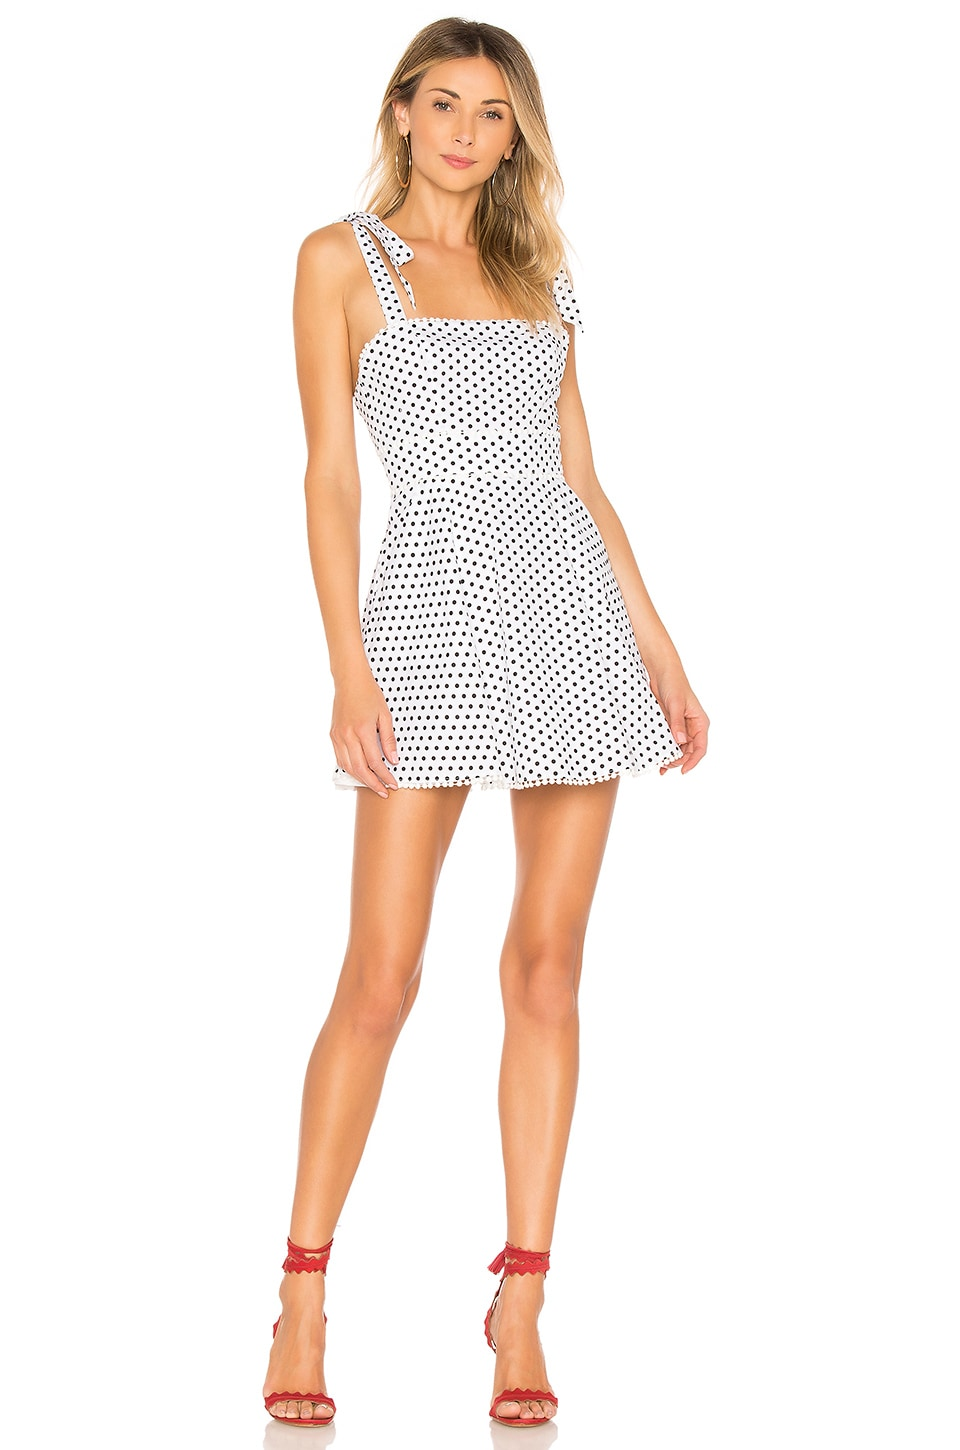 MAJORELLE Lula Dress in Polka